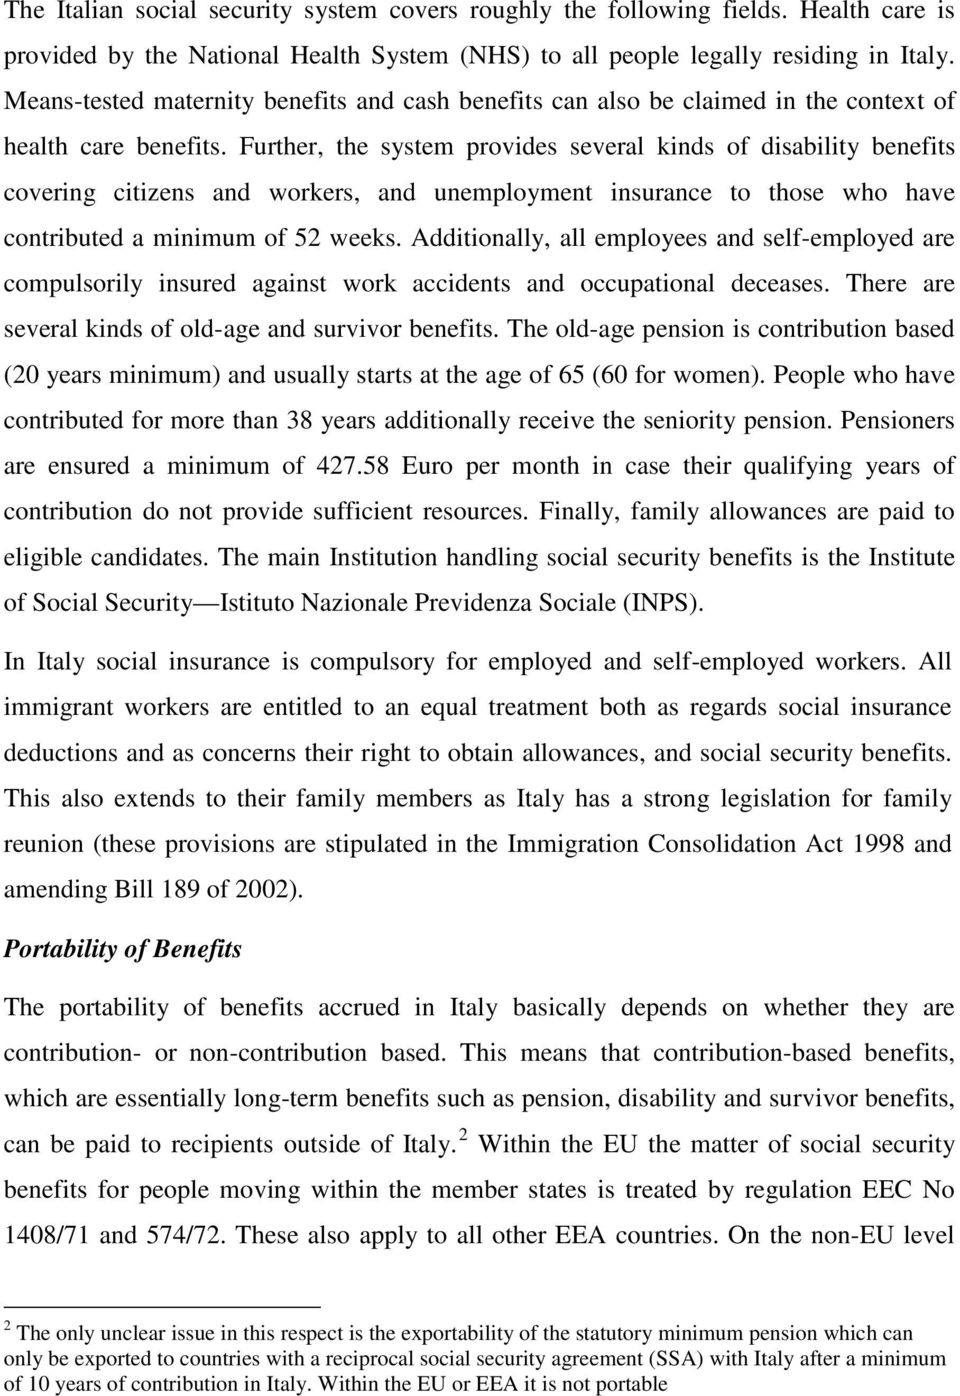 Further, the system provides several kinds of disability benefits covering citizens and workers, and unemployment insurance to those who have contributed a minimum of 52 weeks.